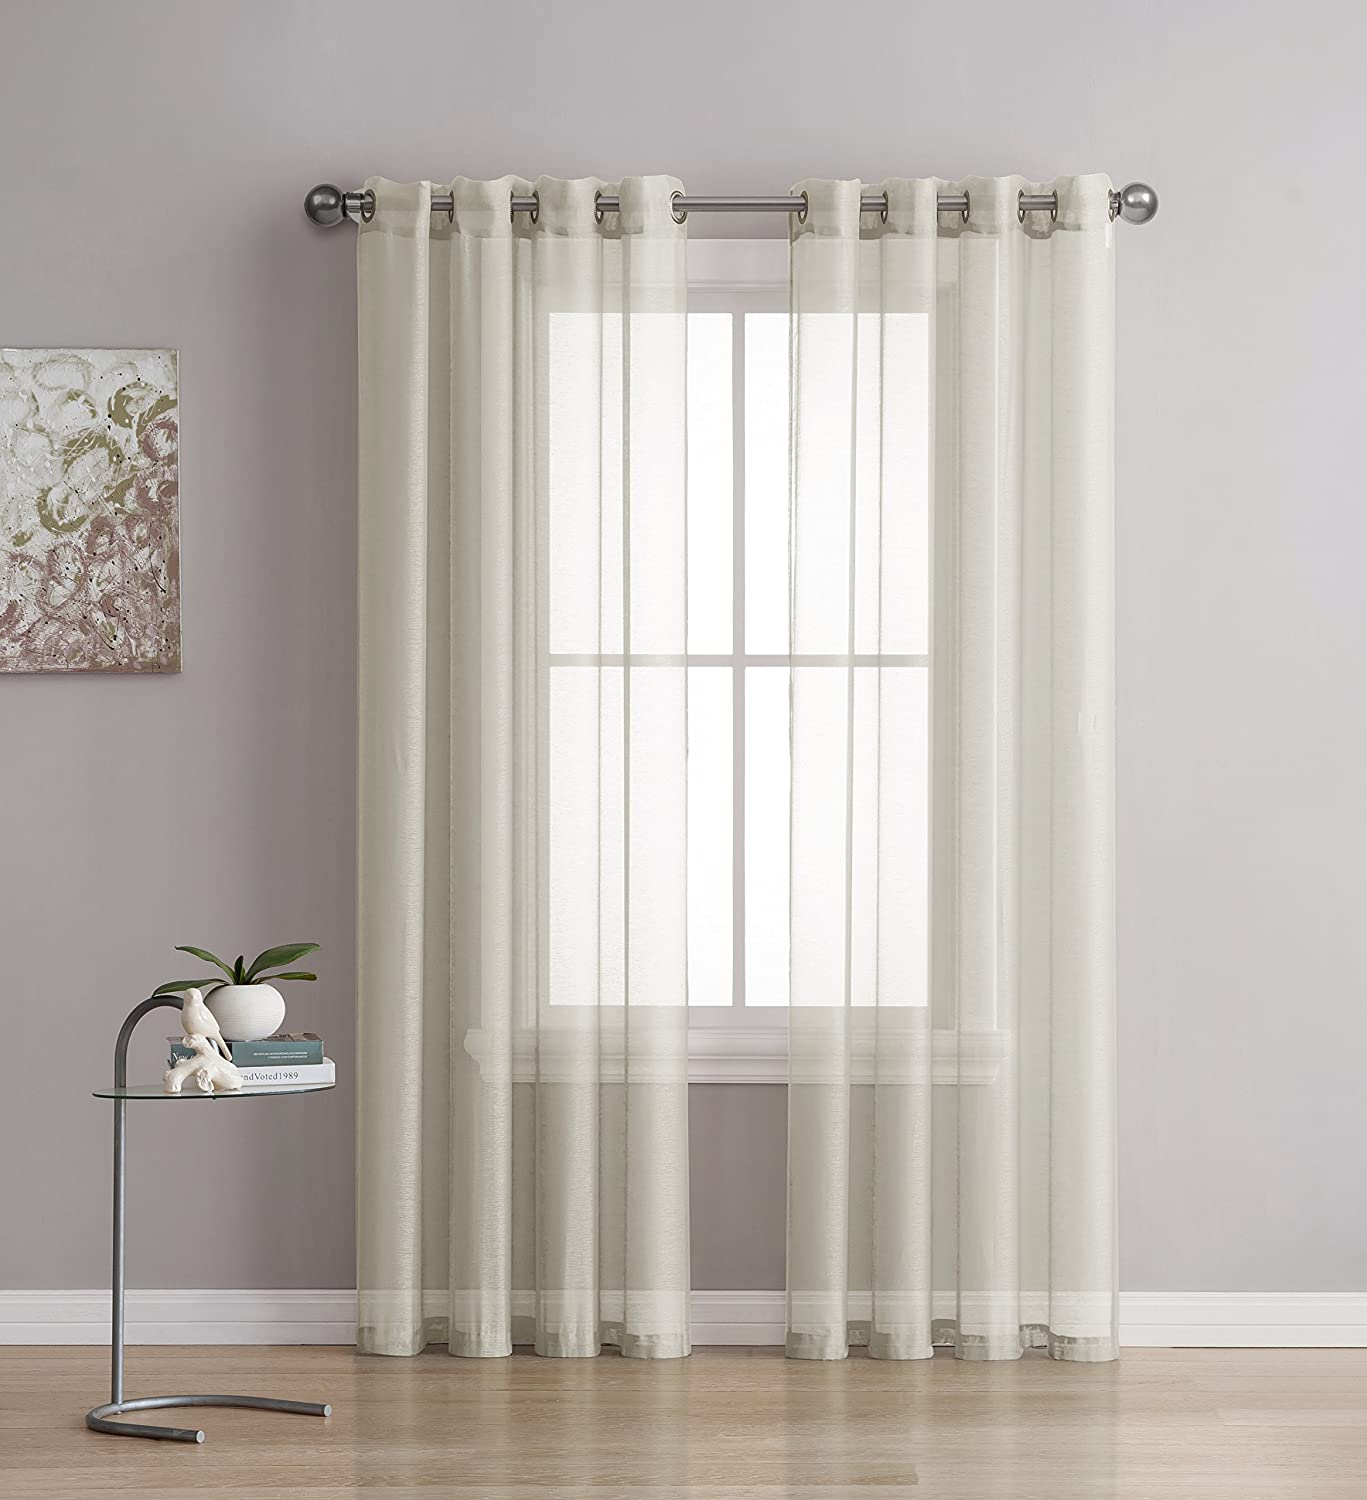 Grommet Semi-Sheer Curtains - 2 Pieces - Total Size 108 Inch Wide (54 Inch Each Panel) - 63 Inch Long - Panel Beautiful, Elegant, Natural Light Flow, ...